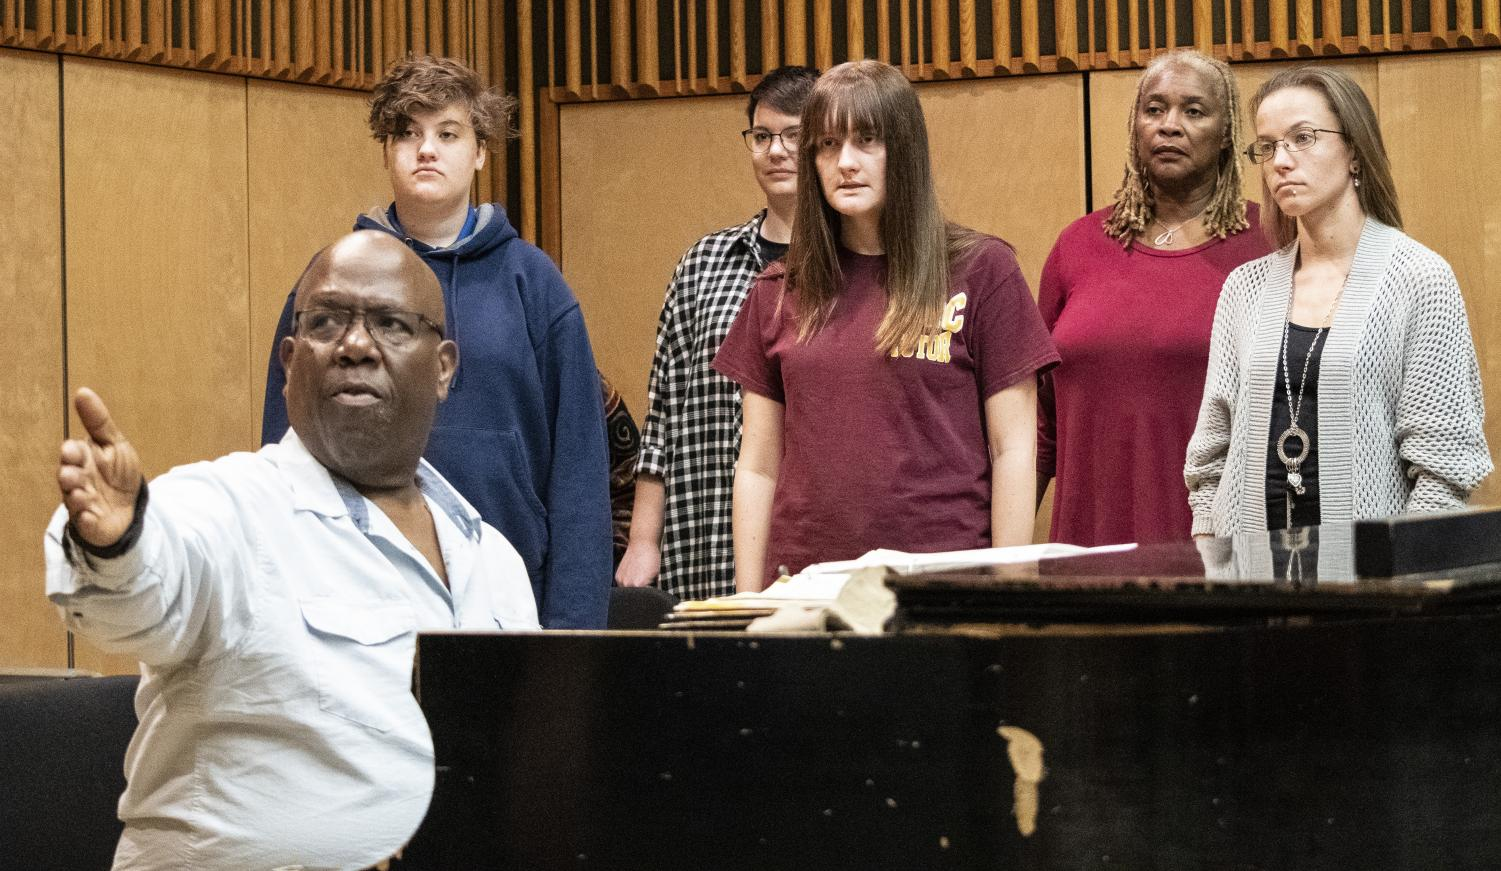 Professor Silvester Henderson conducts a rehearsal for the Fall Choral Adventure Concert with the Chamber Chorale.